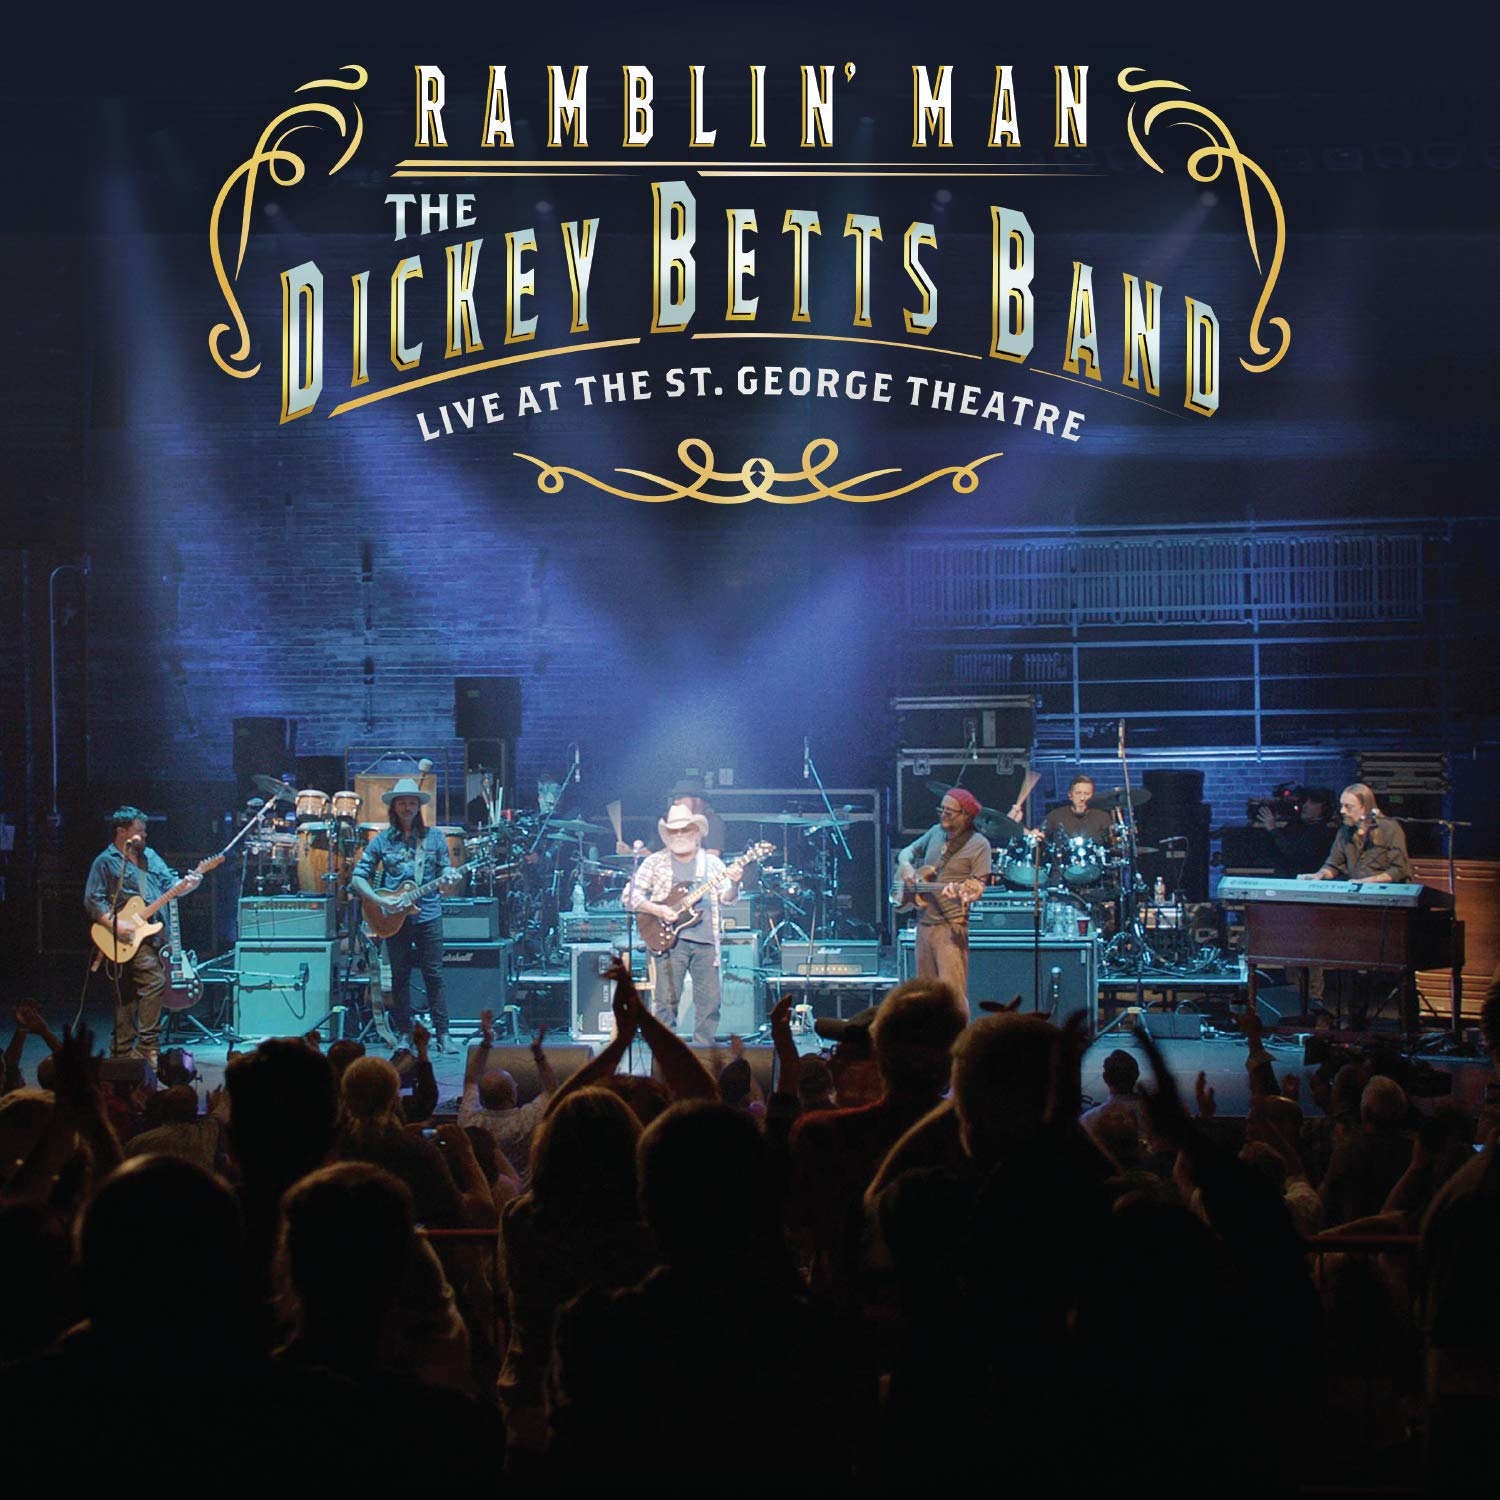 the-dickey-betts-band-ramblin-man-live-at-the-st-george-theatre